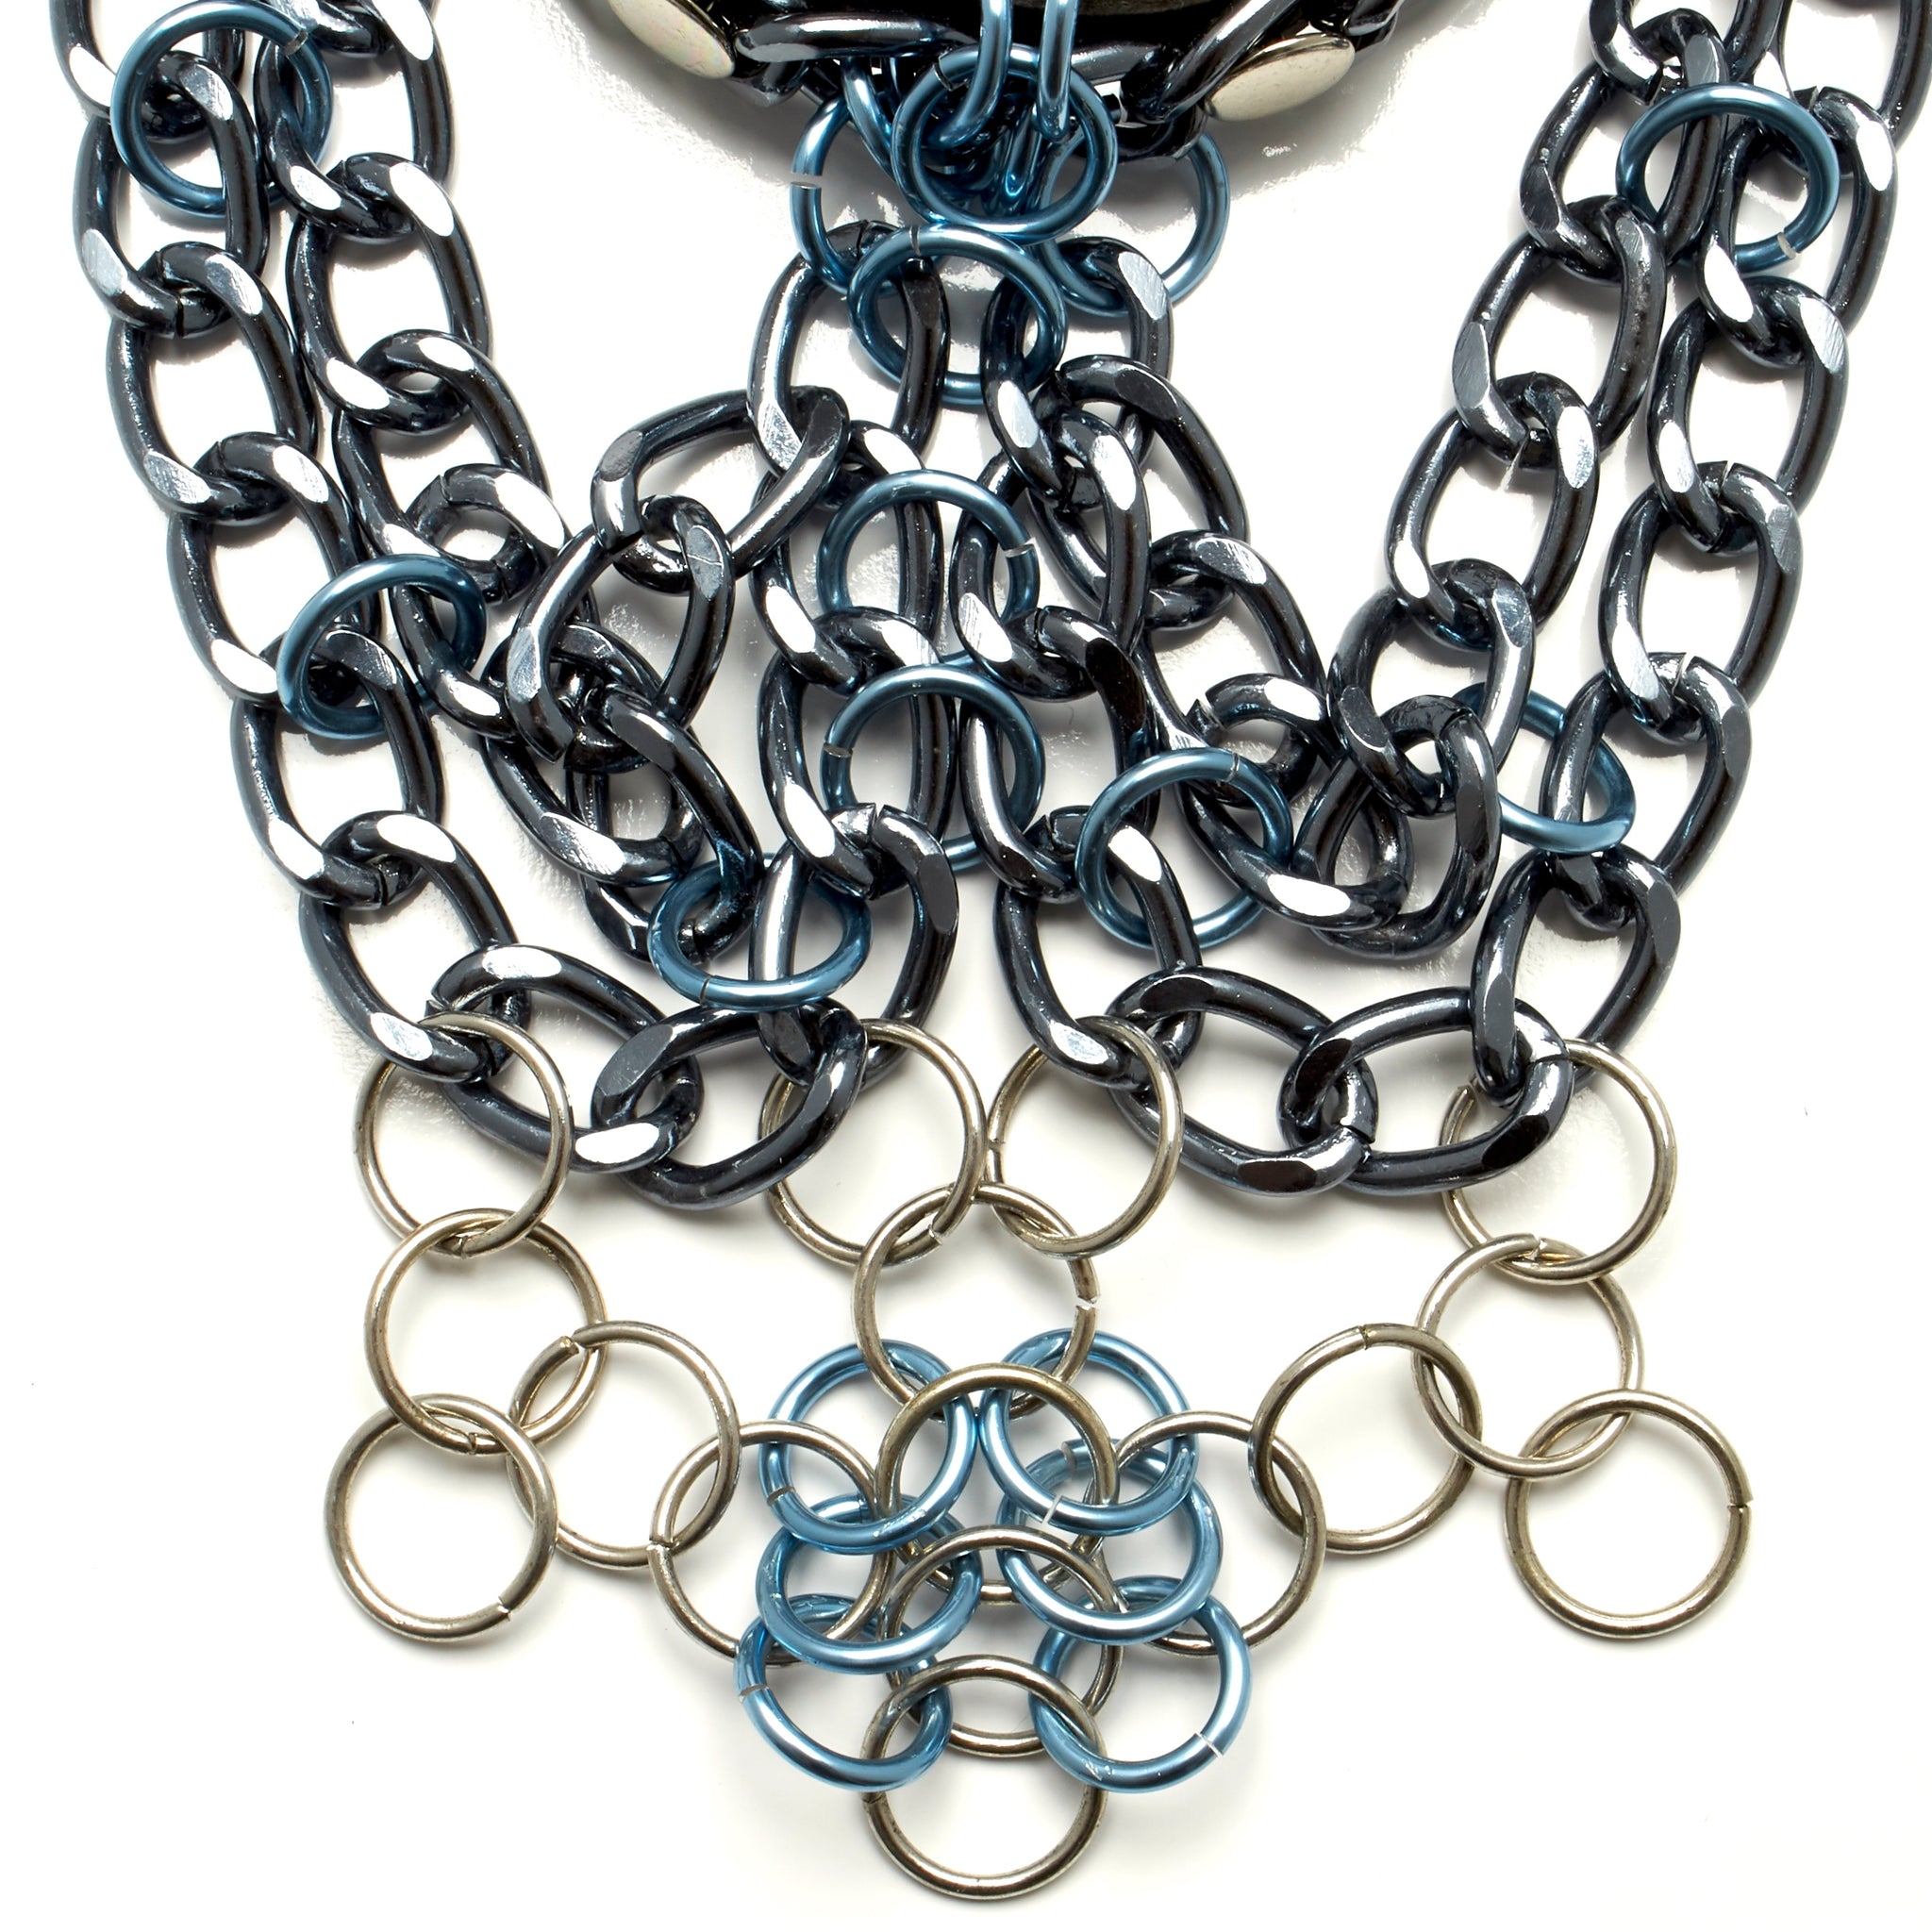 BLACK COWHIDE CHOKER NECKLACE WITH CLUSTER OF CHAINS AND CHAINMAILLE WORK. by nyet jewelry